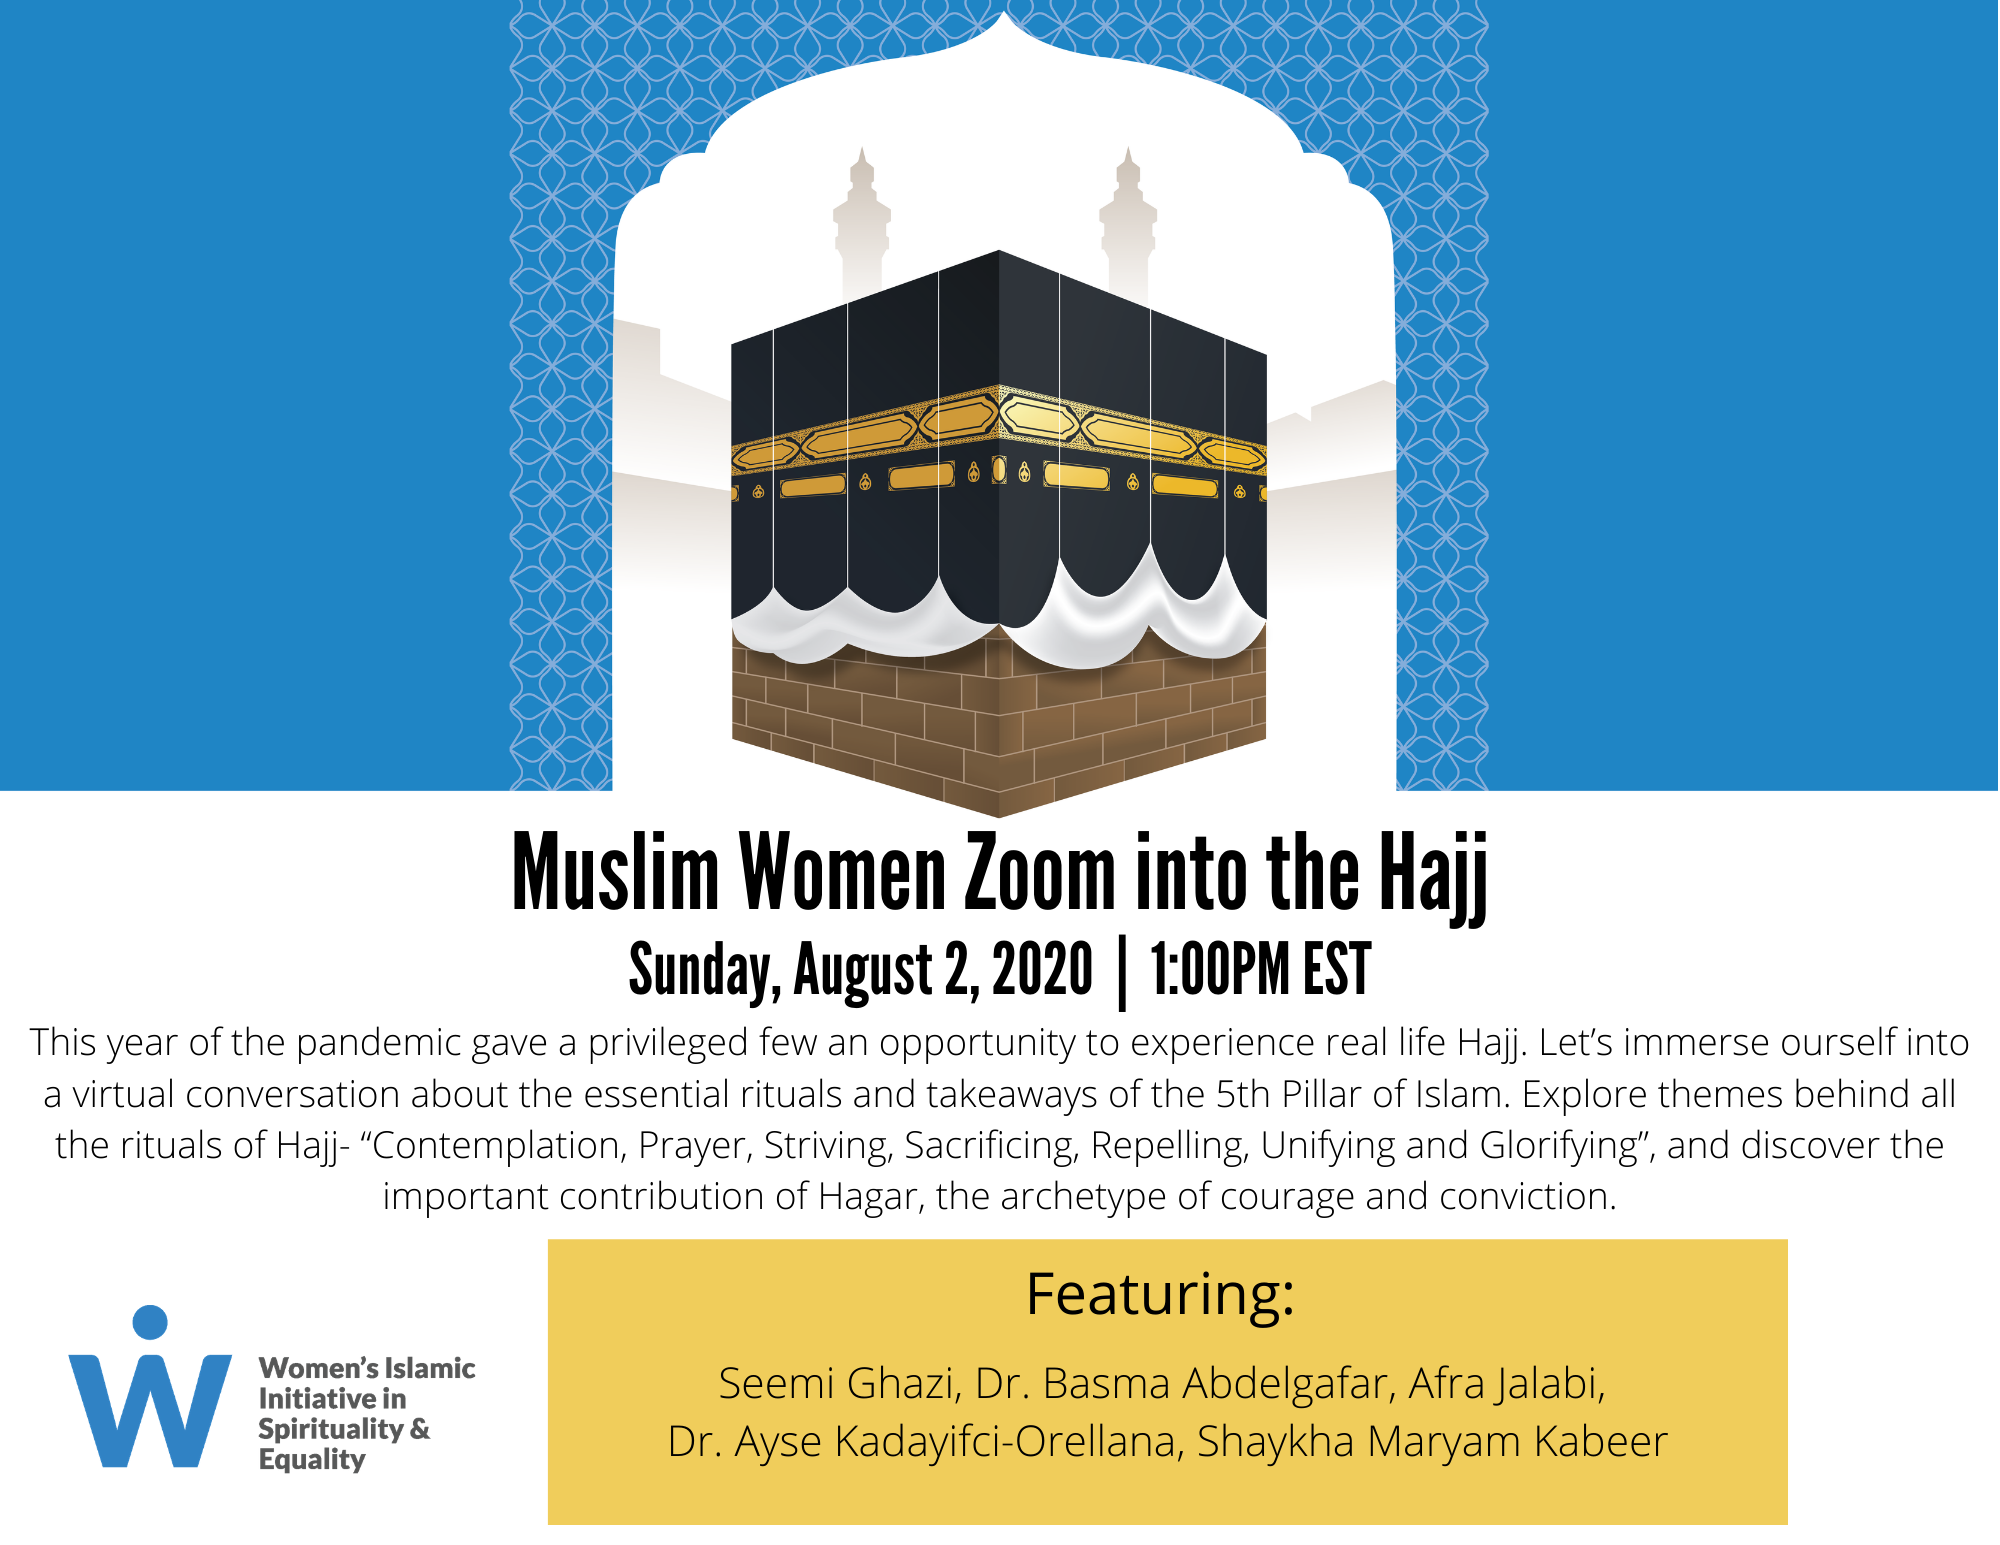 Muslim Women Zoom into the Hajj Flyer for August 2nd with images of each Muslim women speaker and their short biographies that also serves as a button to visit the next page